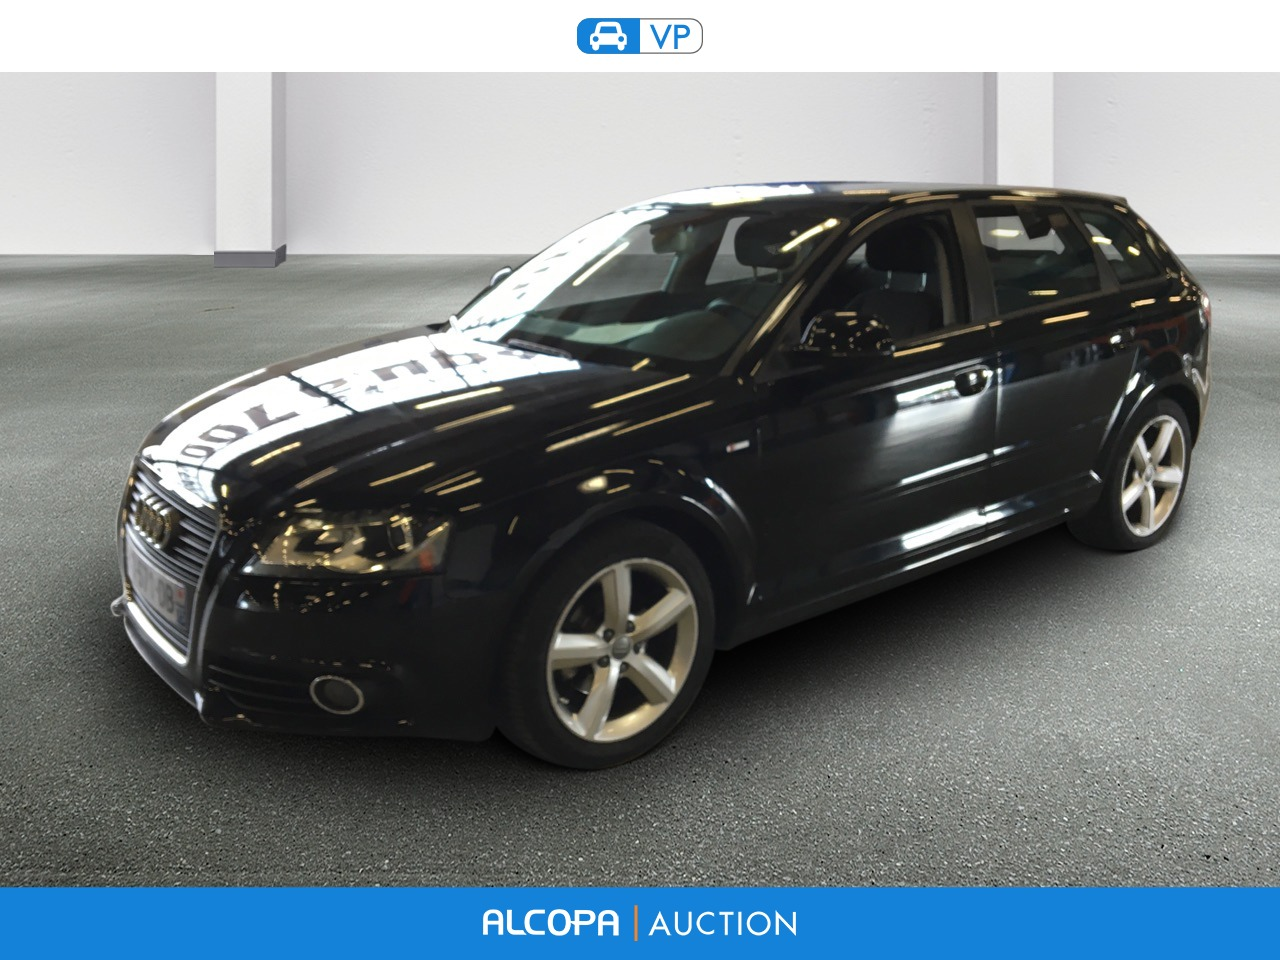 audi a3 a3 sportback 1 9 tdi e 105 dpf ambiente alcopa auction. Black Bedroom Furniture Sets. Home Design Ideas